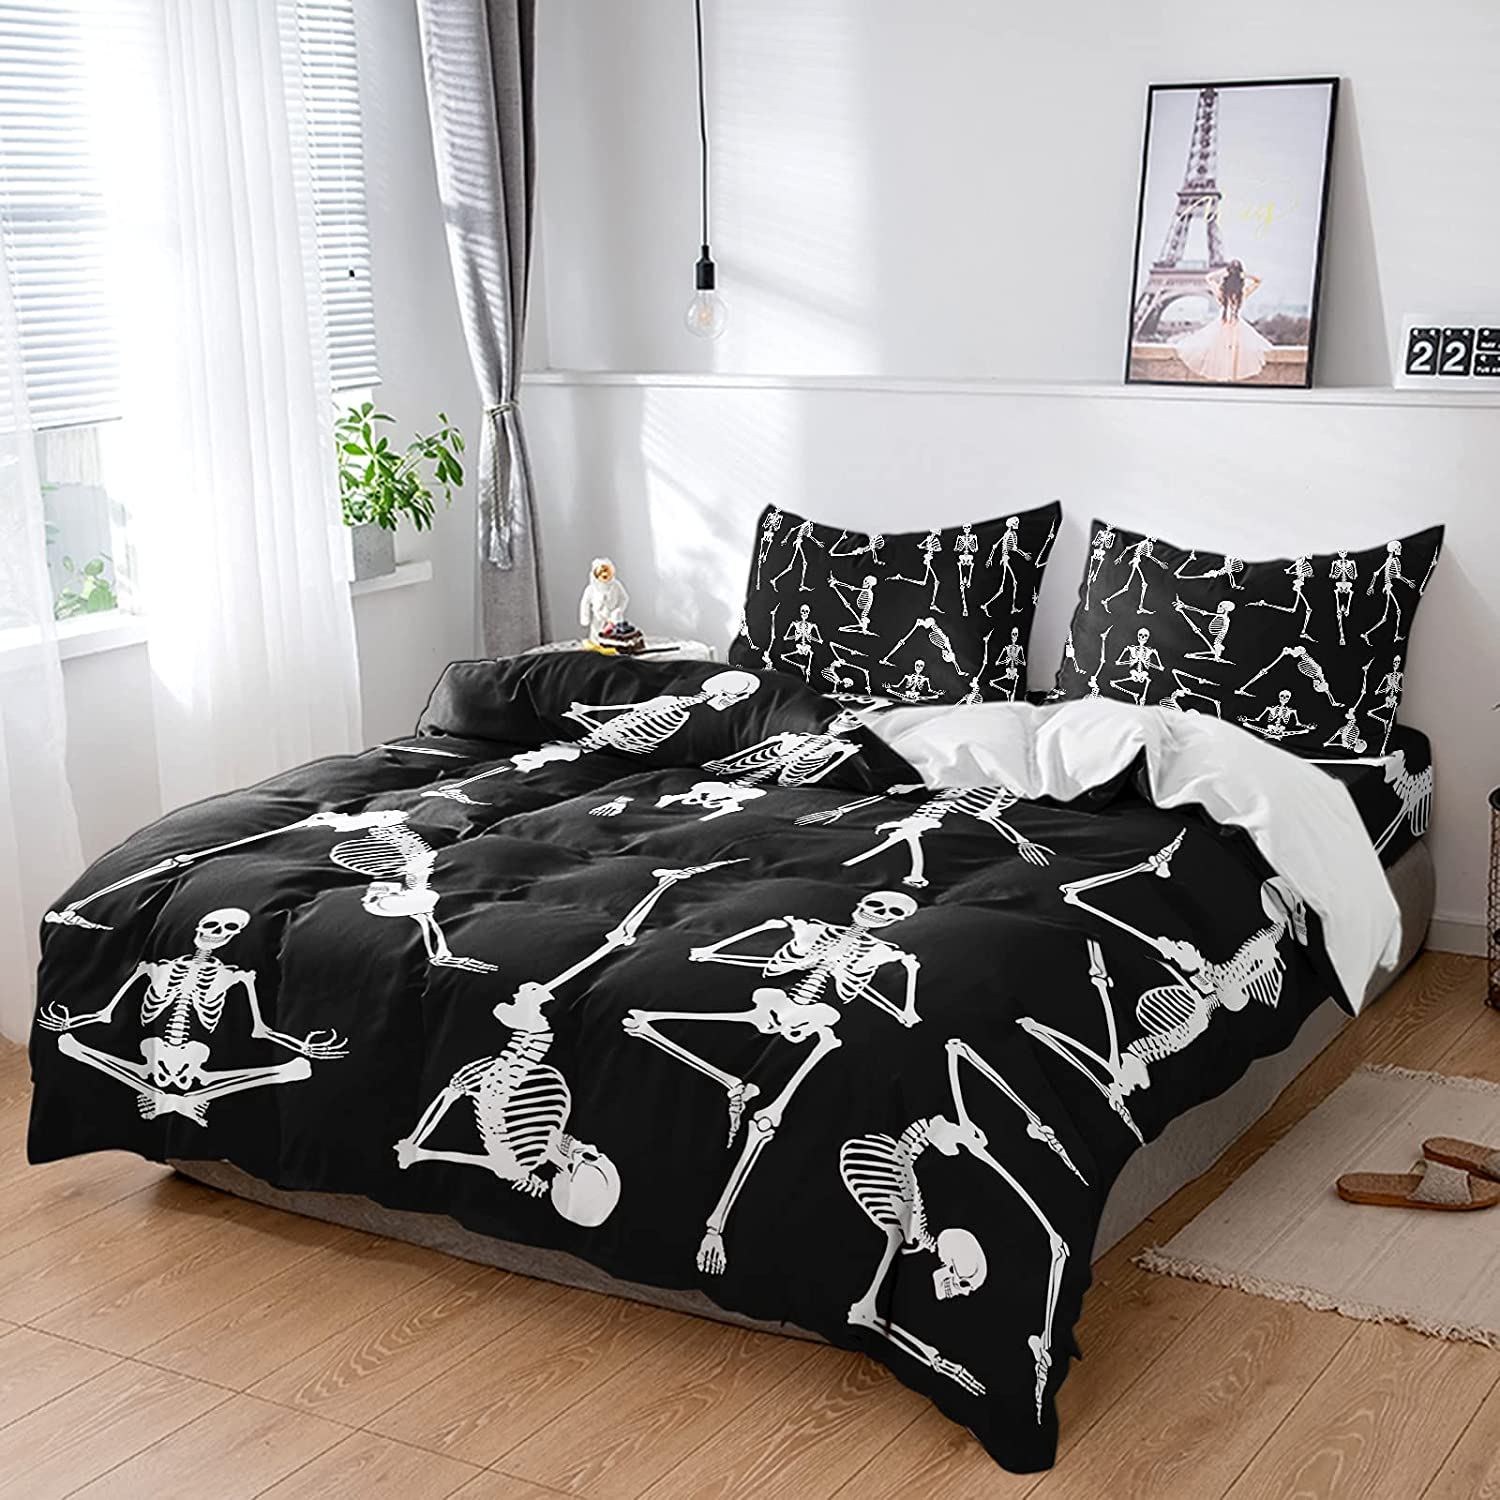 ZL Home Bedding Sets 4Pcs Soft Party Cover Duvet Halloween Funn Super sale Limited time for free shipping period limited